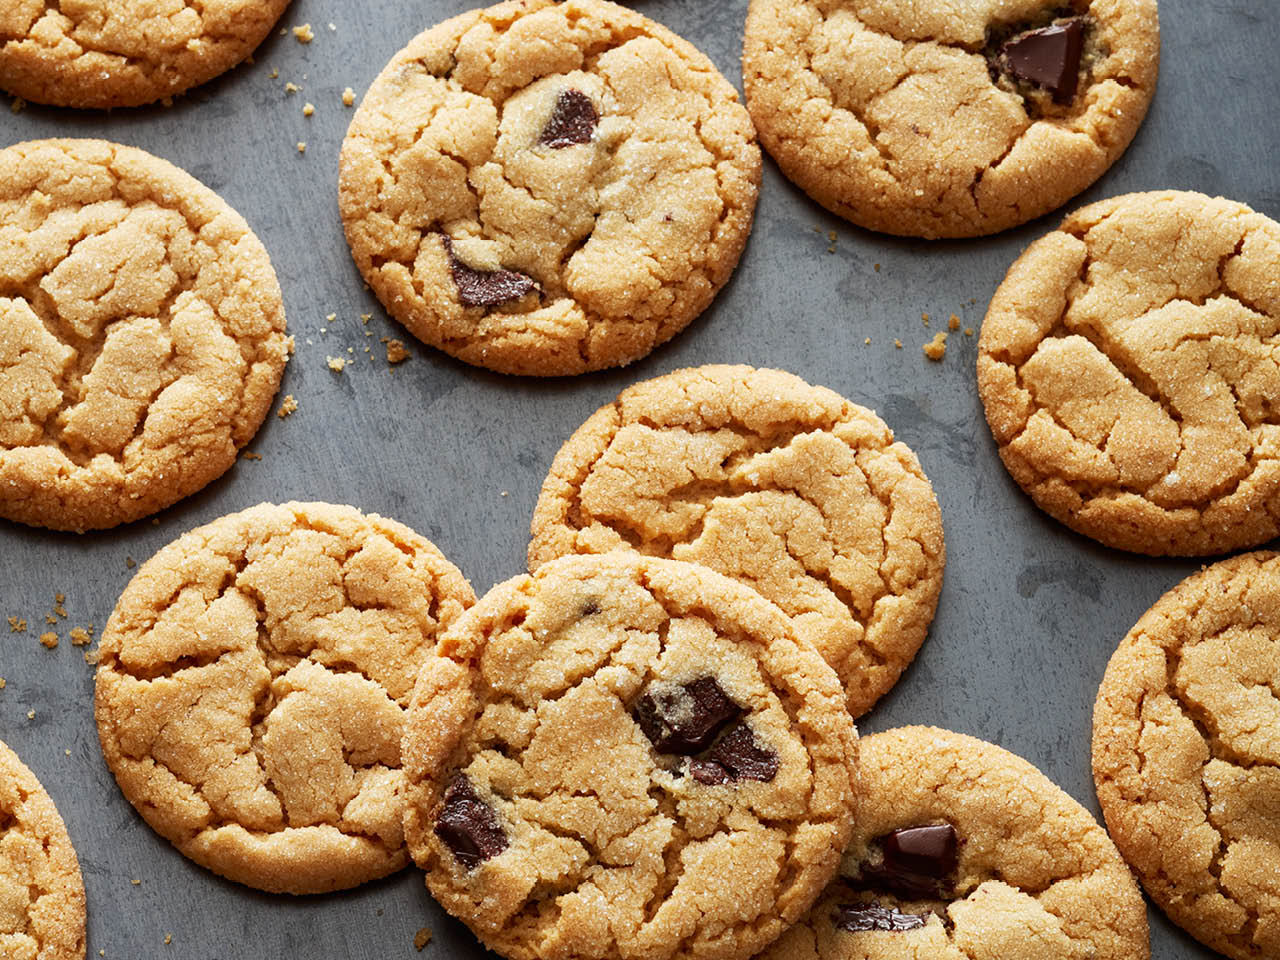 Chatelaine' best cookie recipes: classic peanut butter cookies and peanut butter cookies with chocolate chunks on a silver cookie sheet